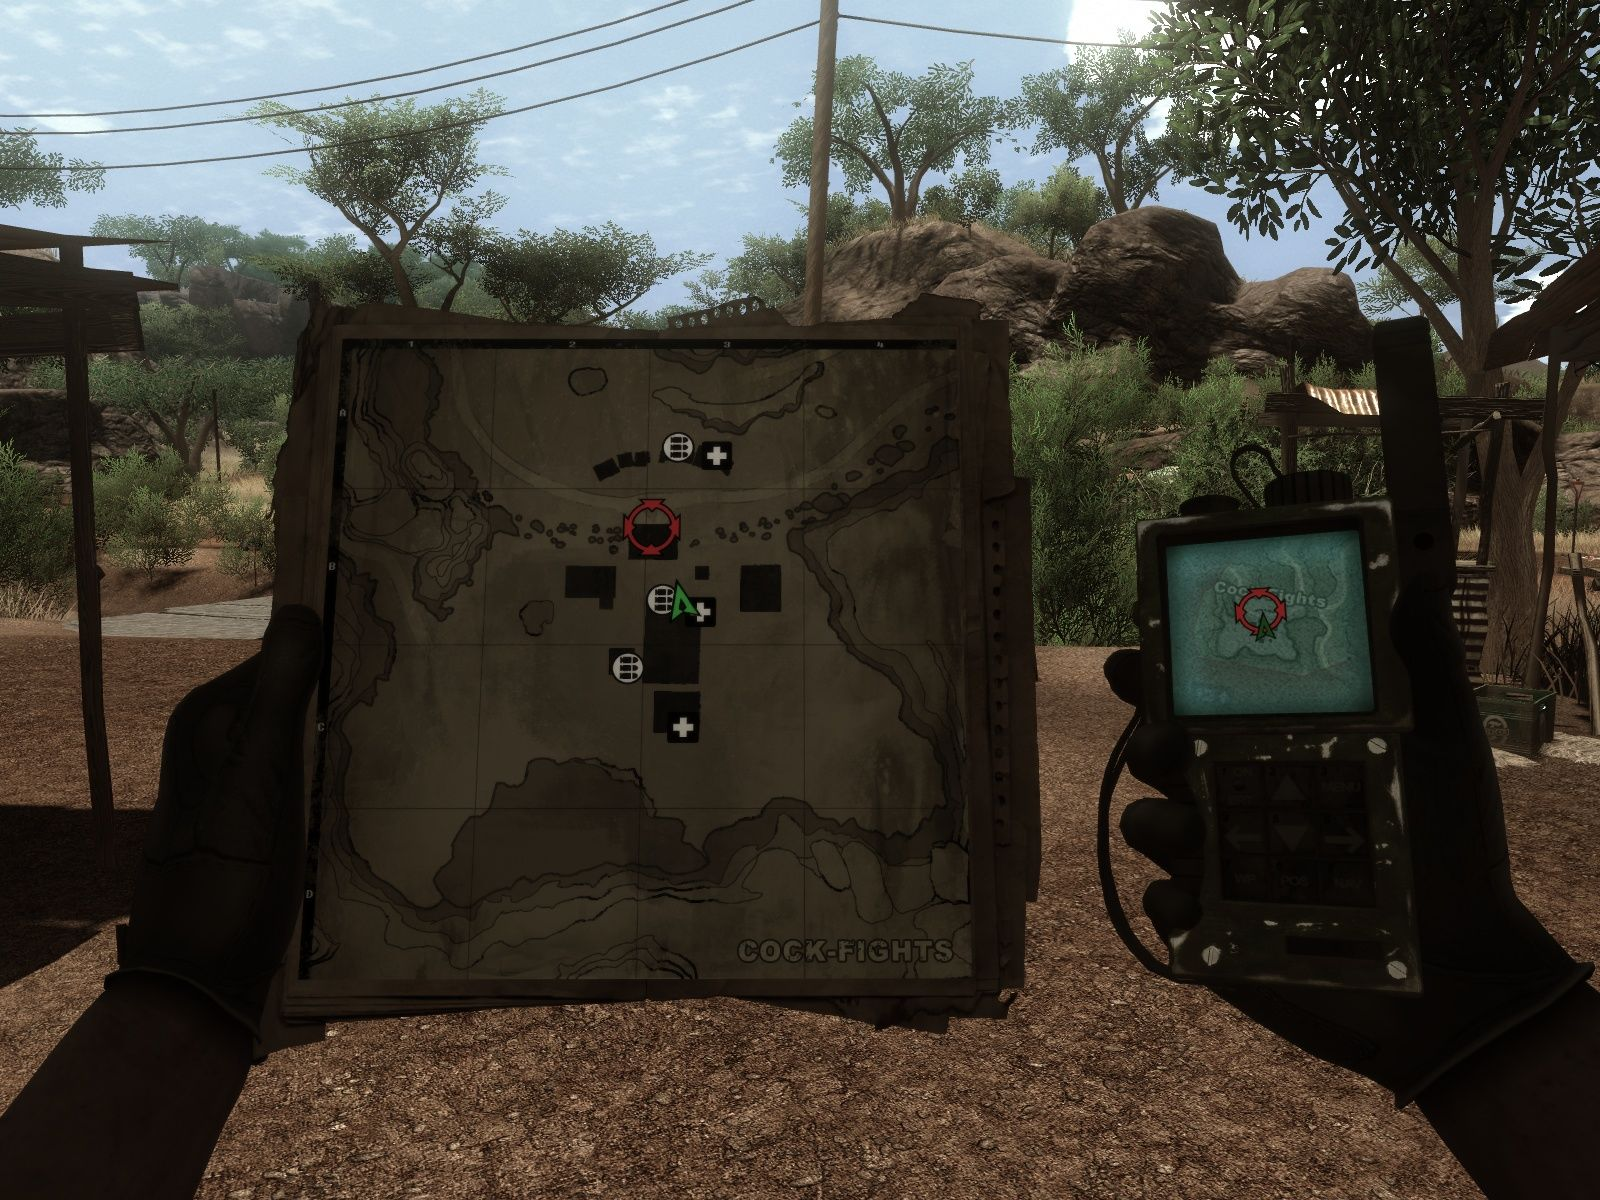 Far Cry 2 Windows The map and your GPS phone - the most important survival tools.